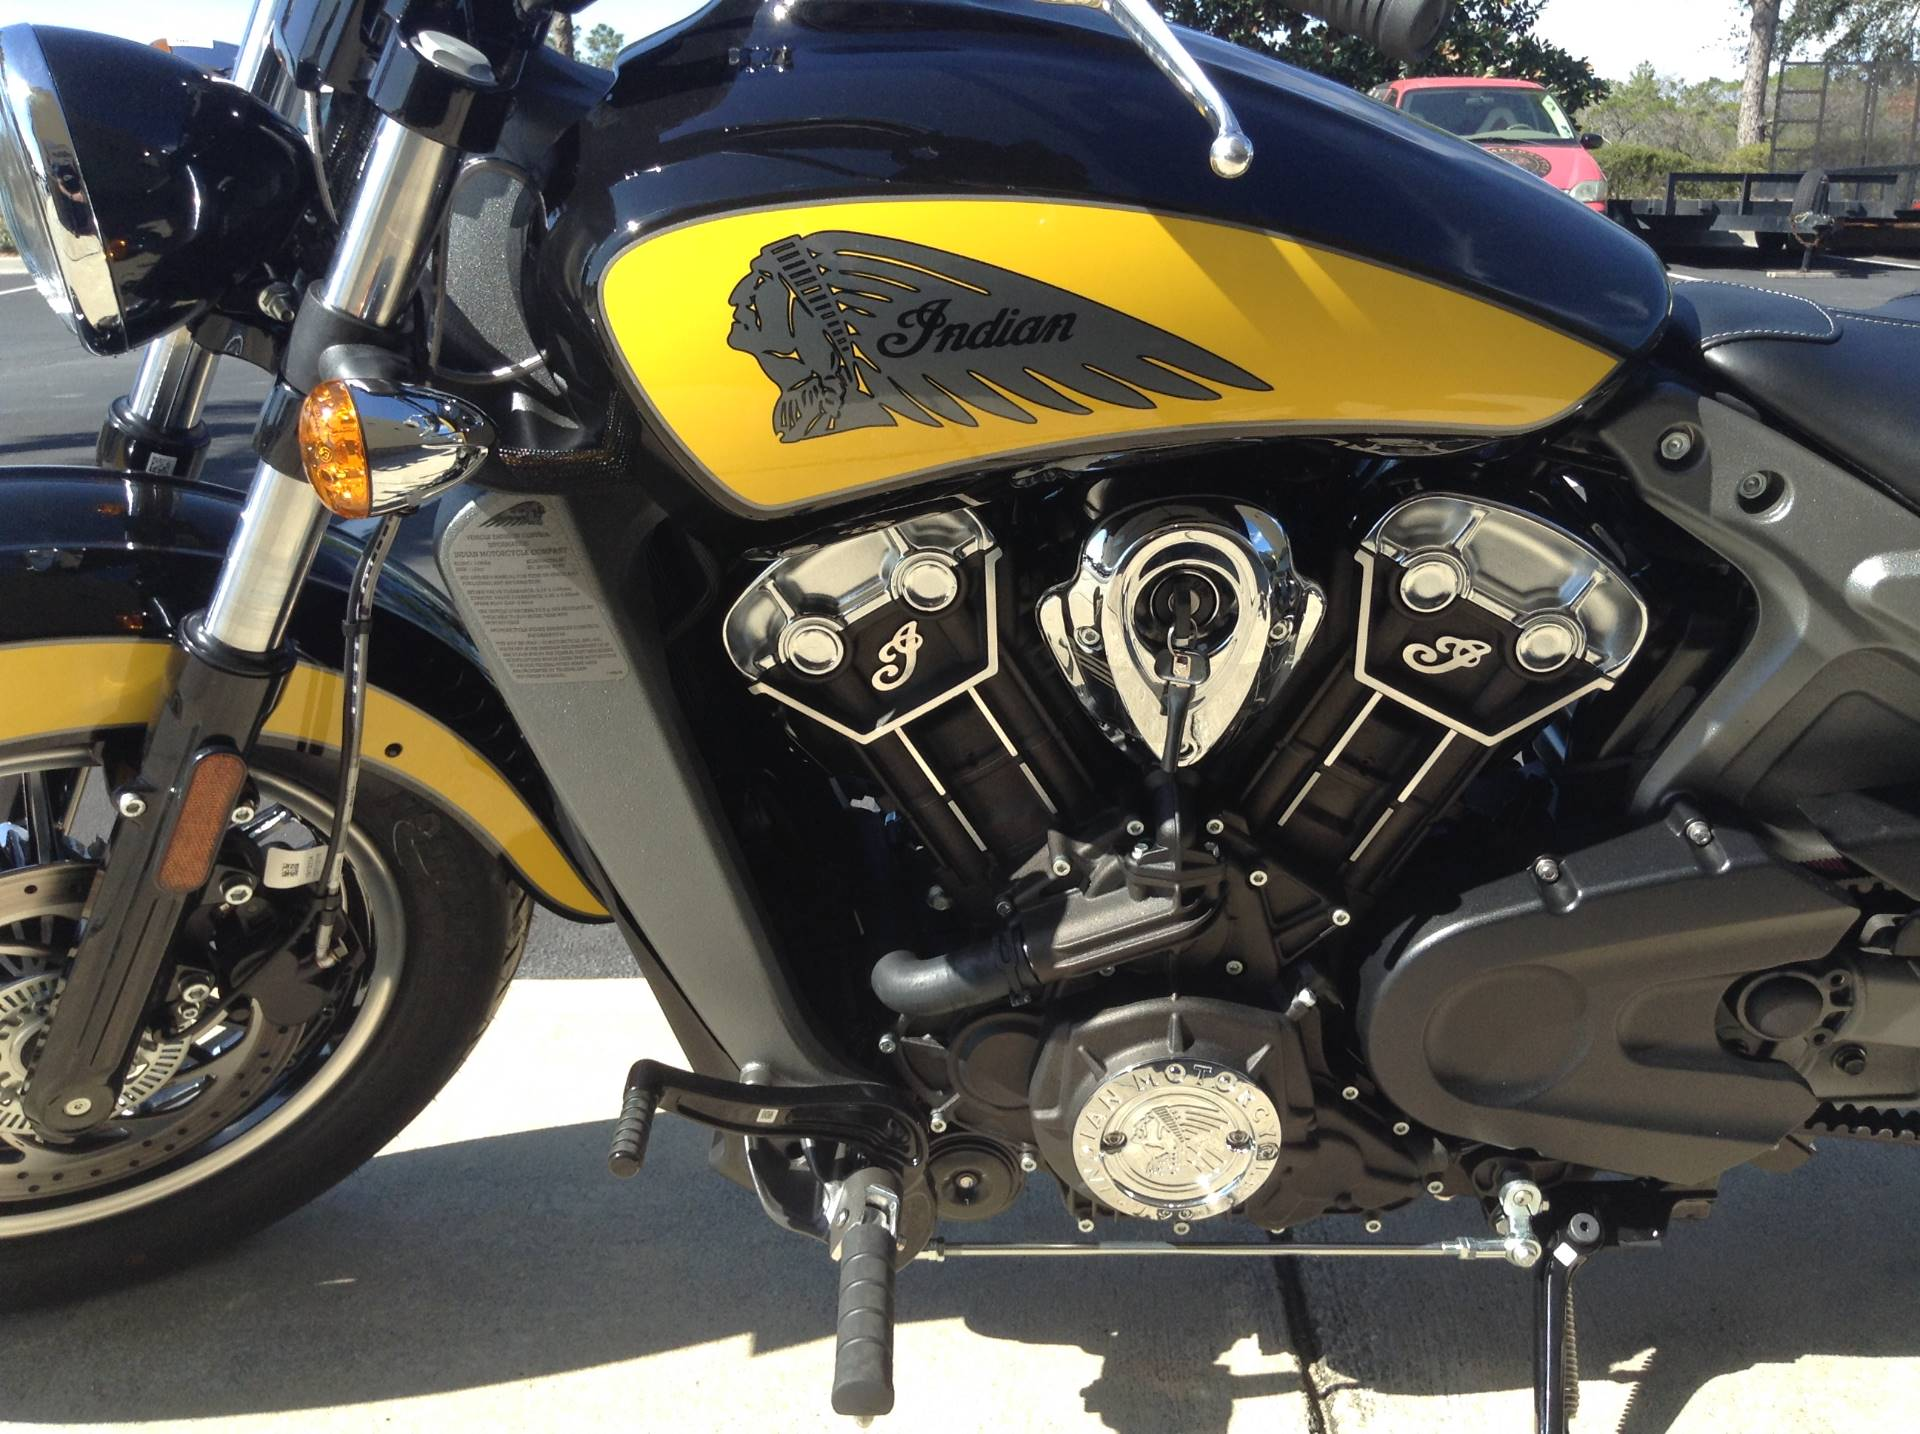 2019 Indian Scout ABS Icon Series in Panama City Beach, Florida - Photo 13